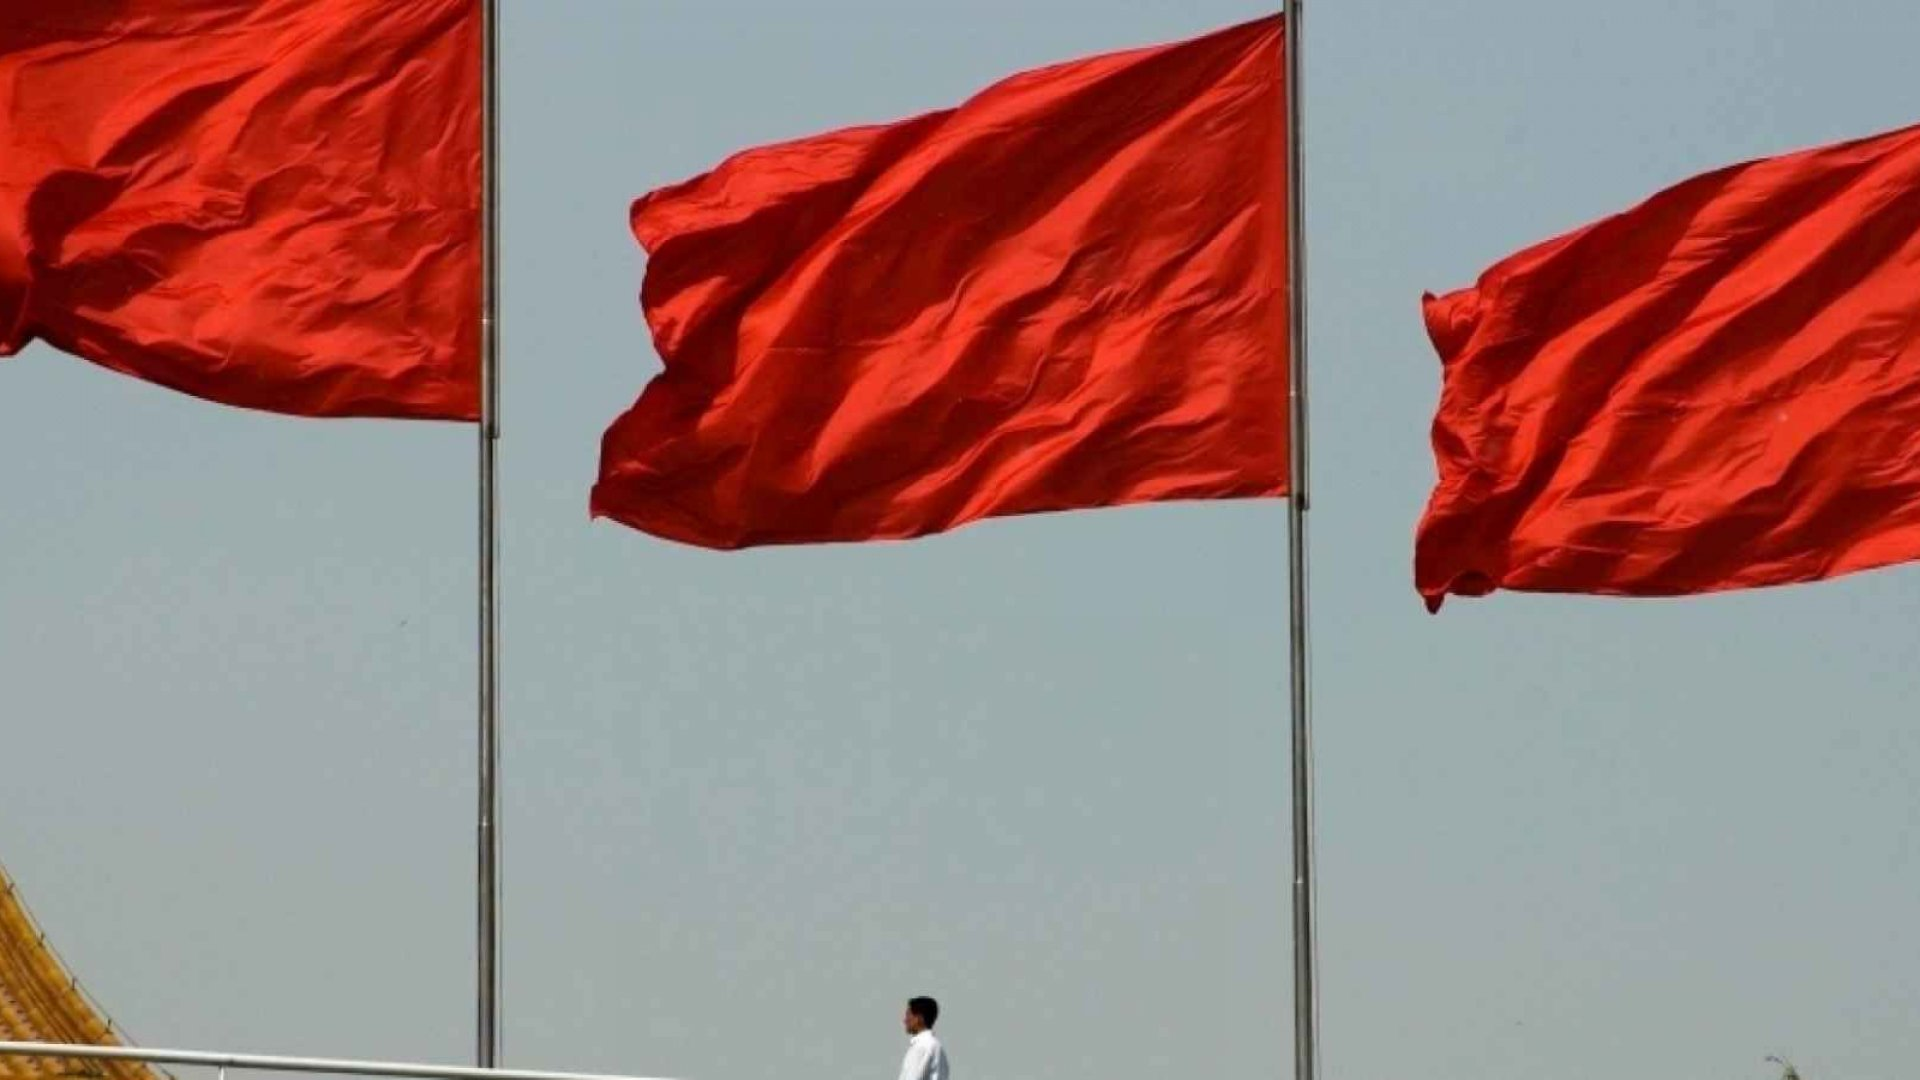 3 Red Flags Startup Investors Should Look Out For